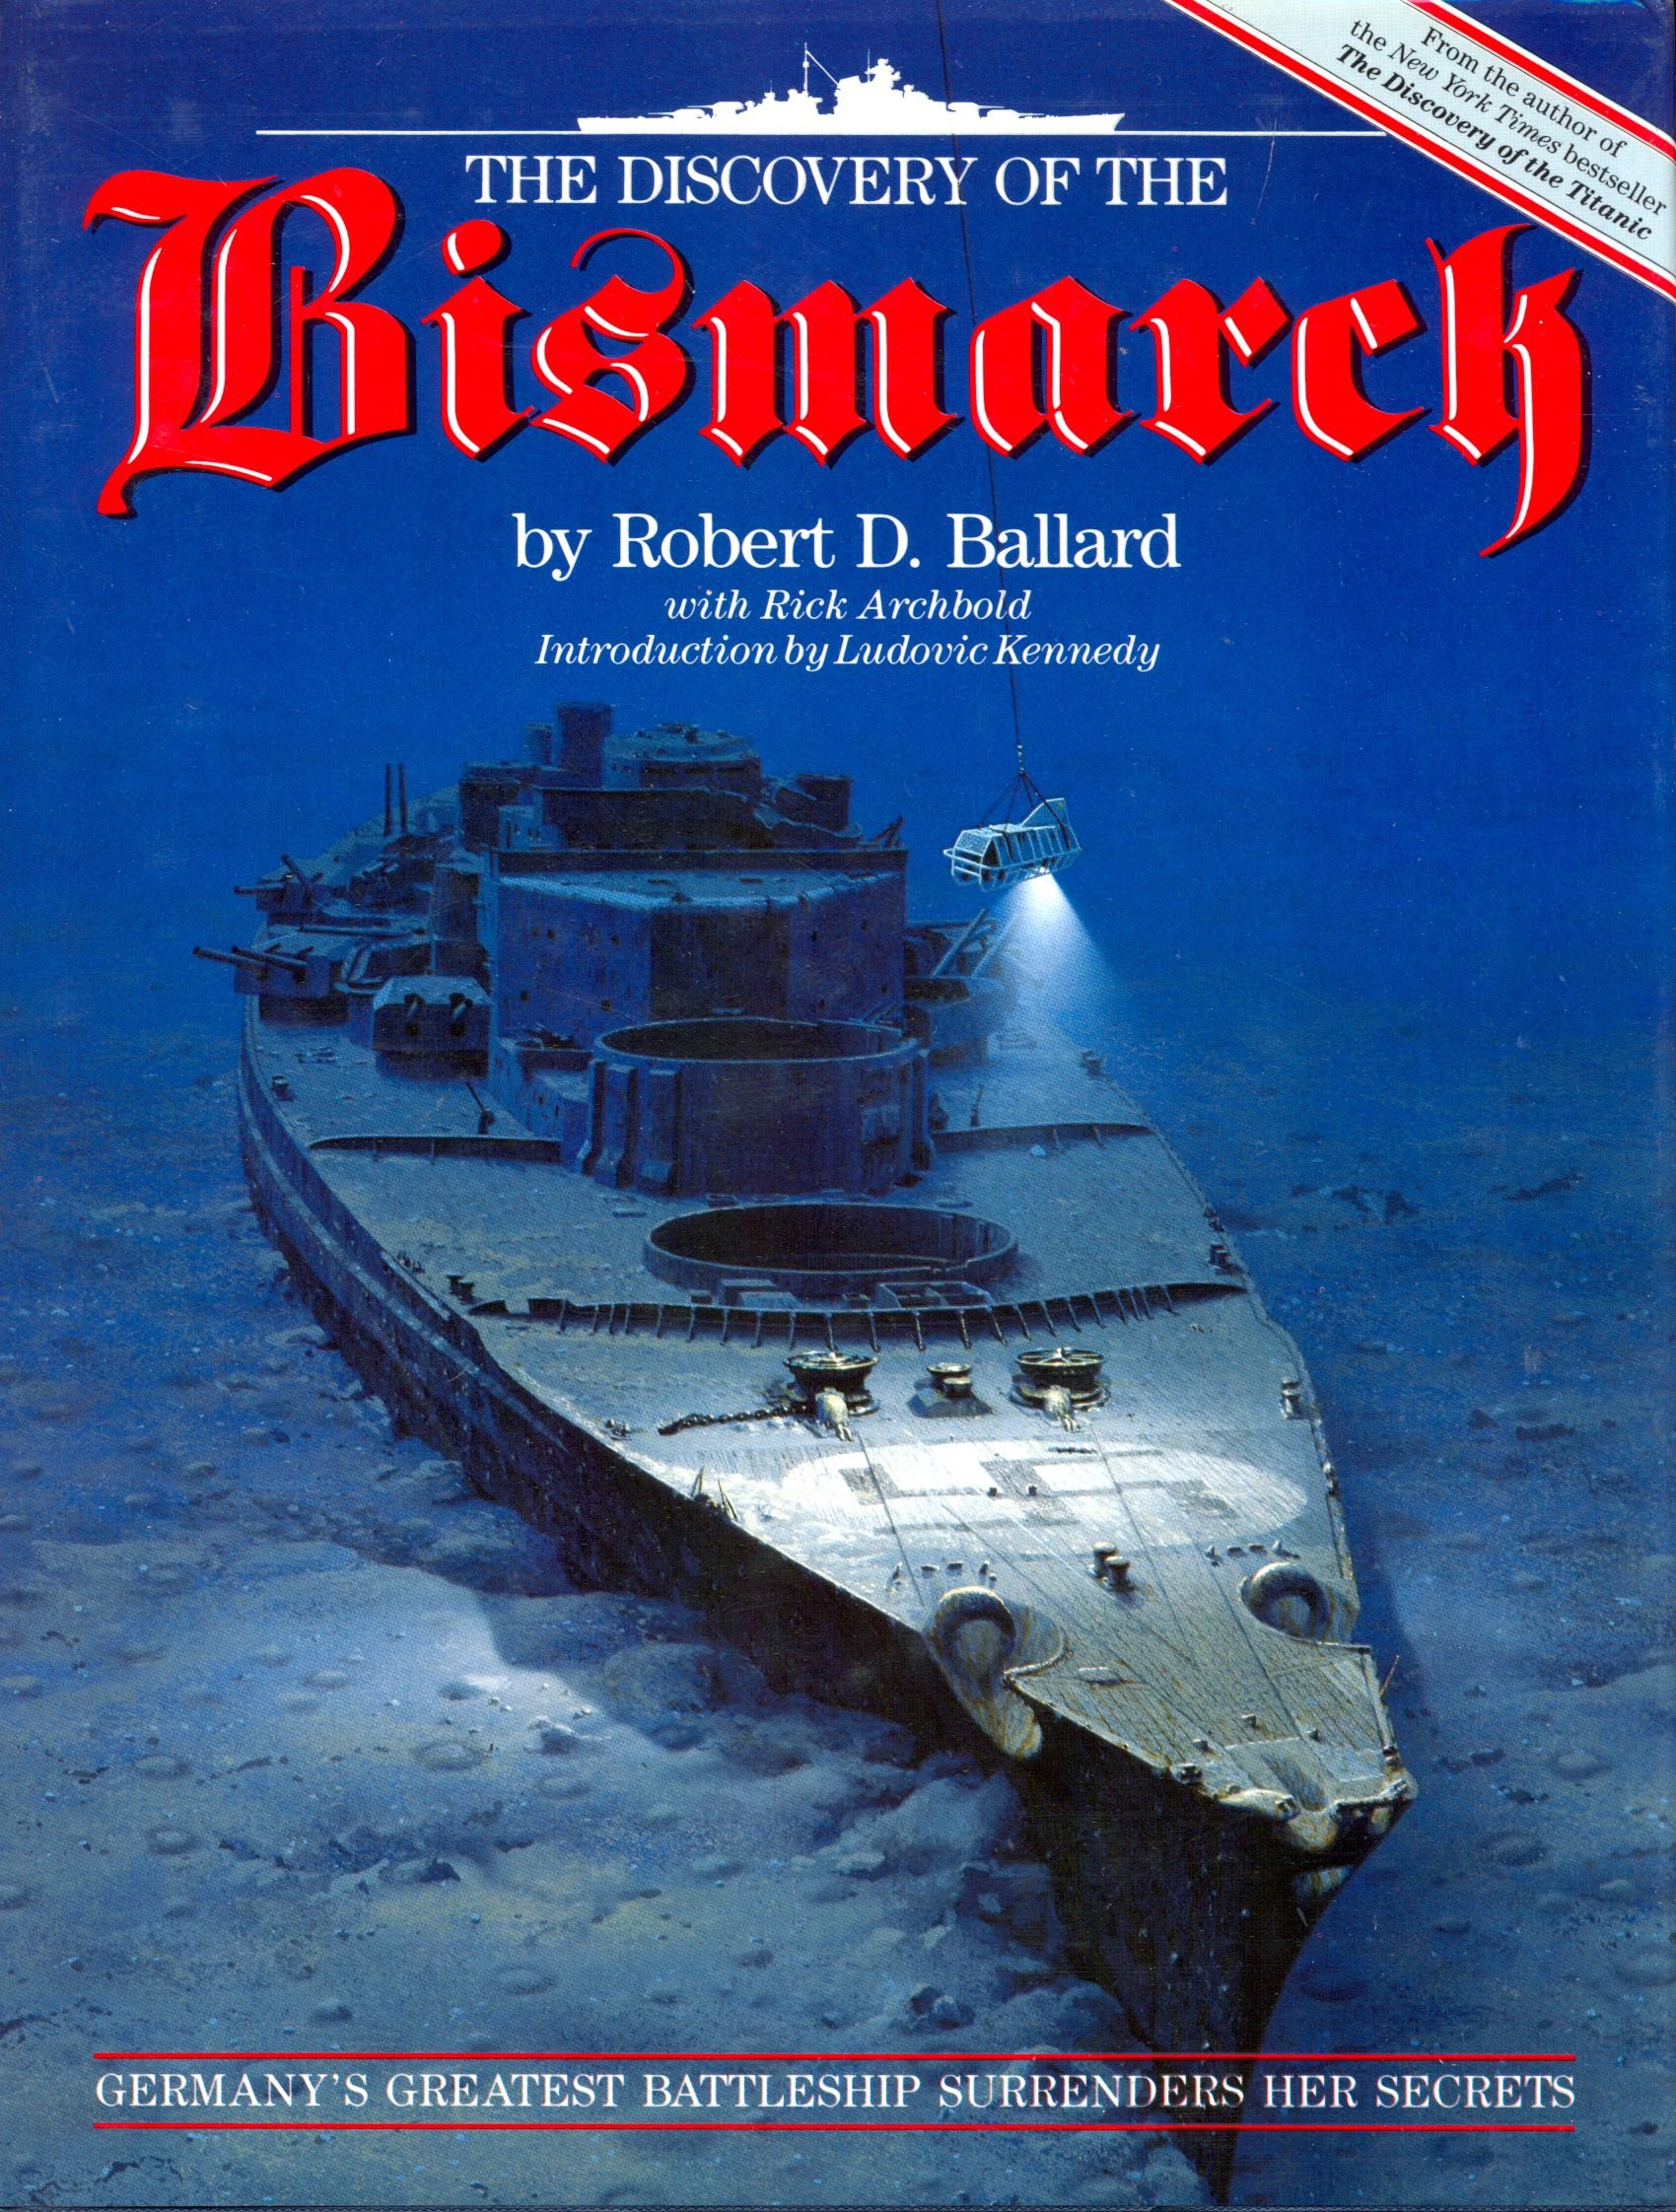 The Discovery of the Bismarck: Germany's Greatest Battleship Surrenders Her Secrets, Robert D. Ballard; Rick Archbold